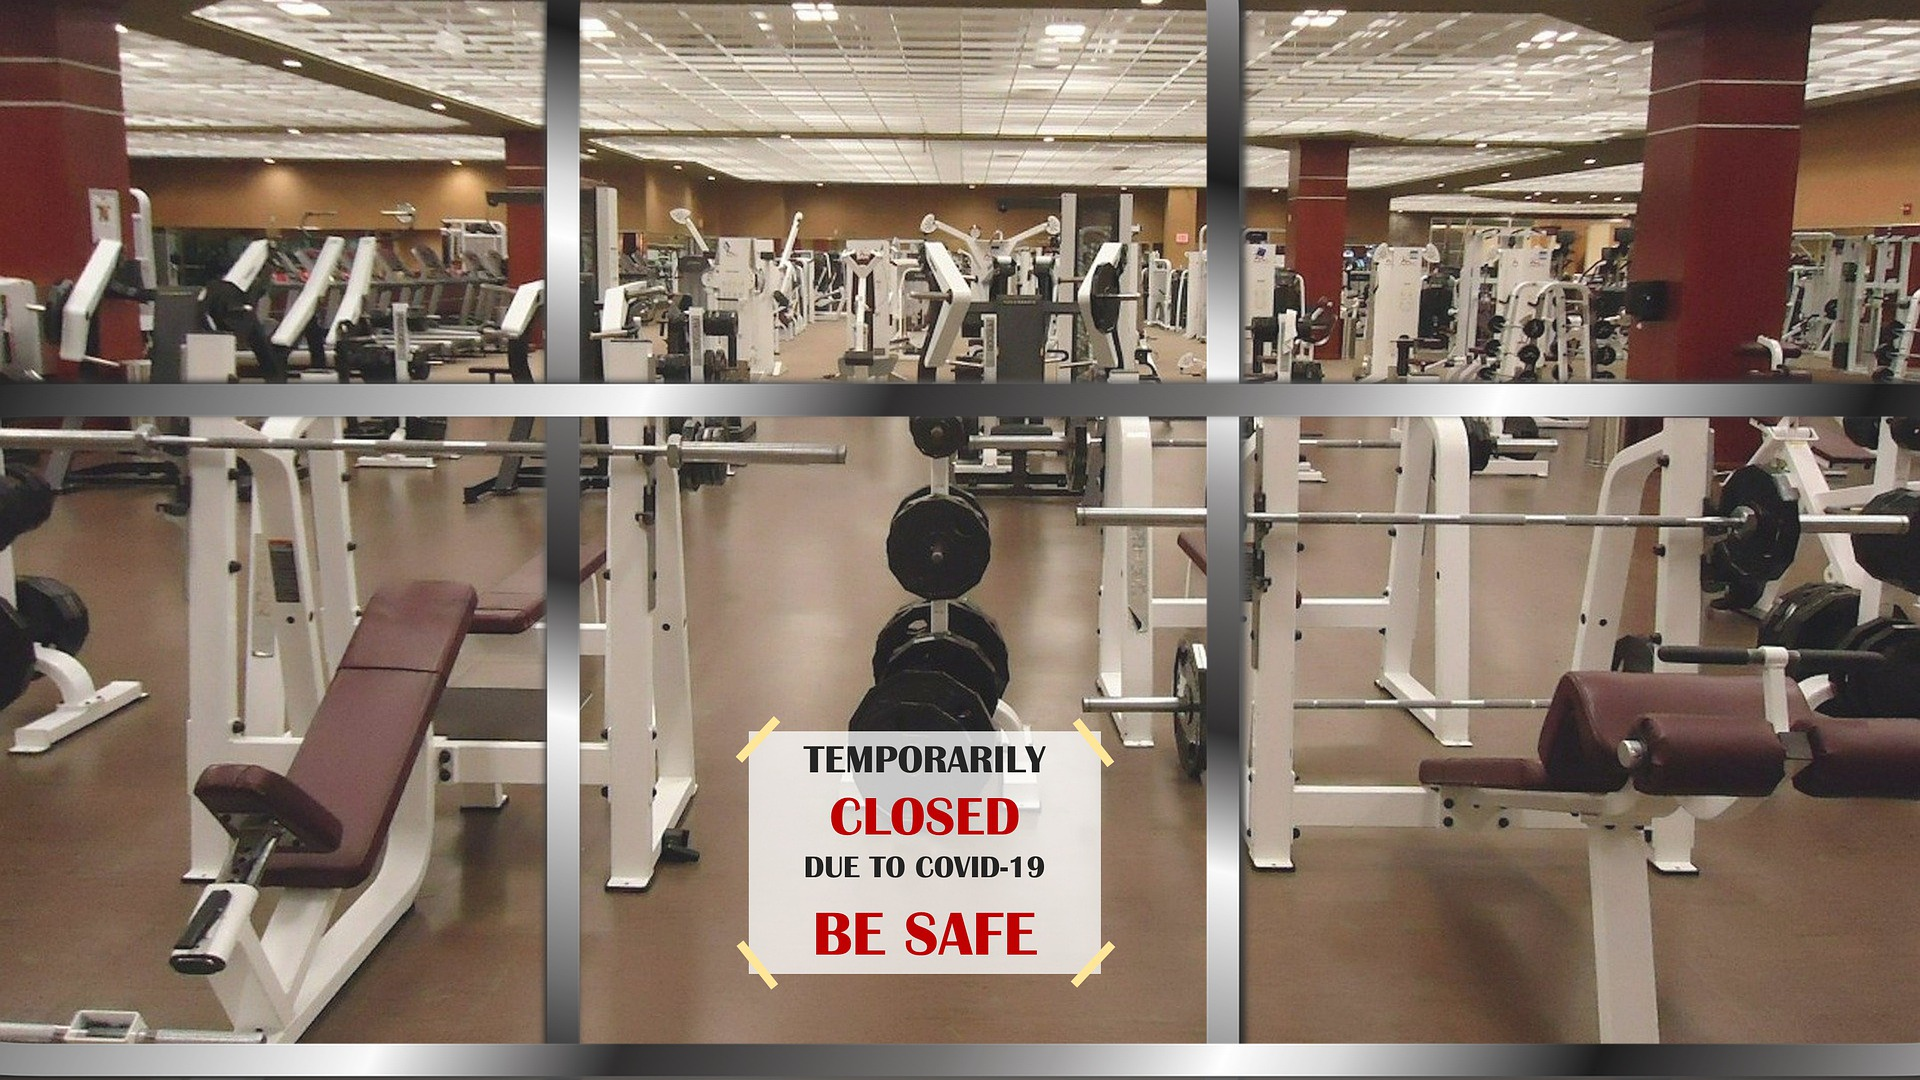 Gym Closed Due To Covid-19